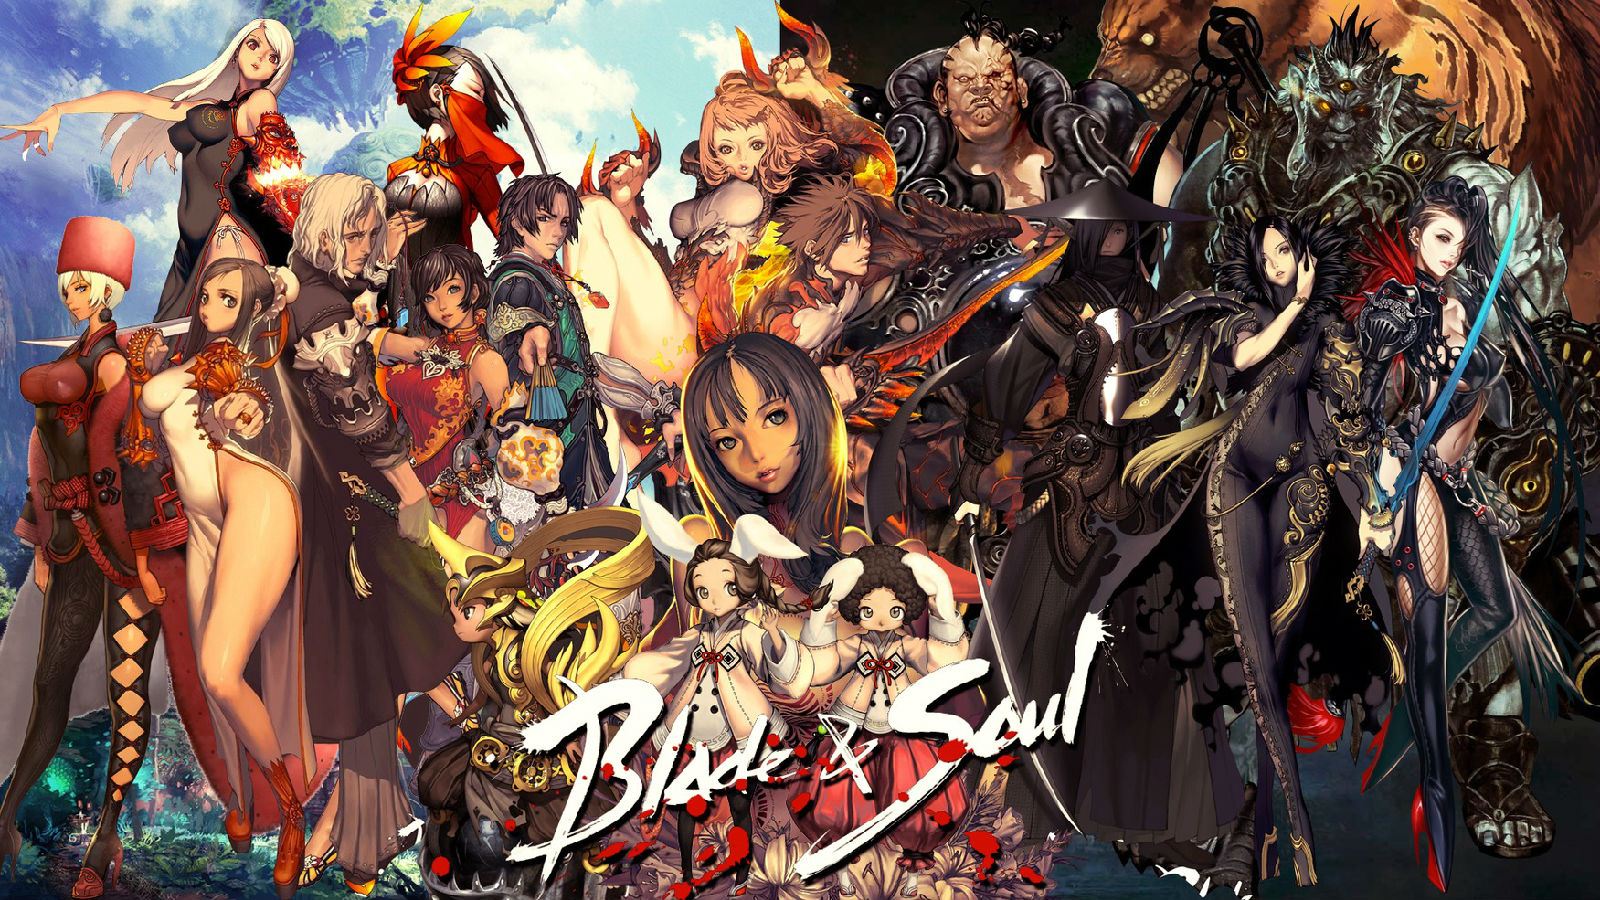 File Name 981250 Best Anime Wallpaper Blade And Soul 981250 Anime 1600x900